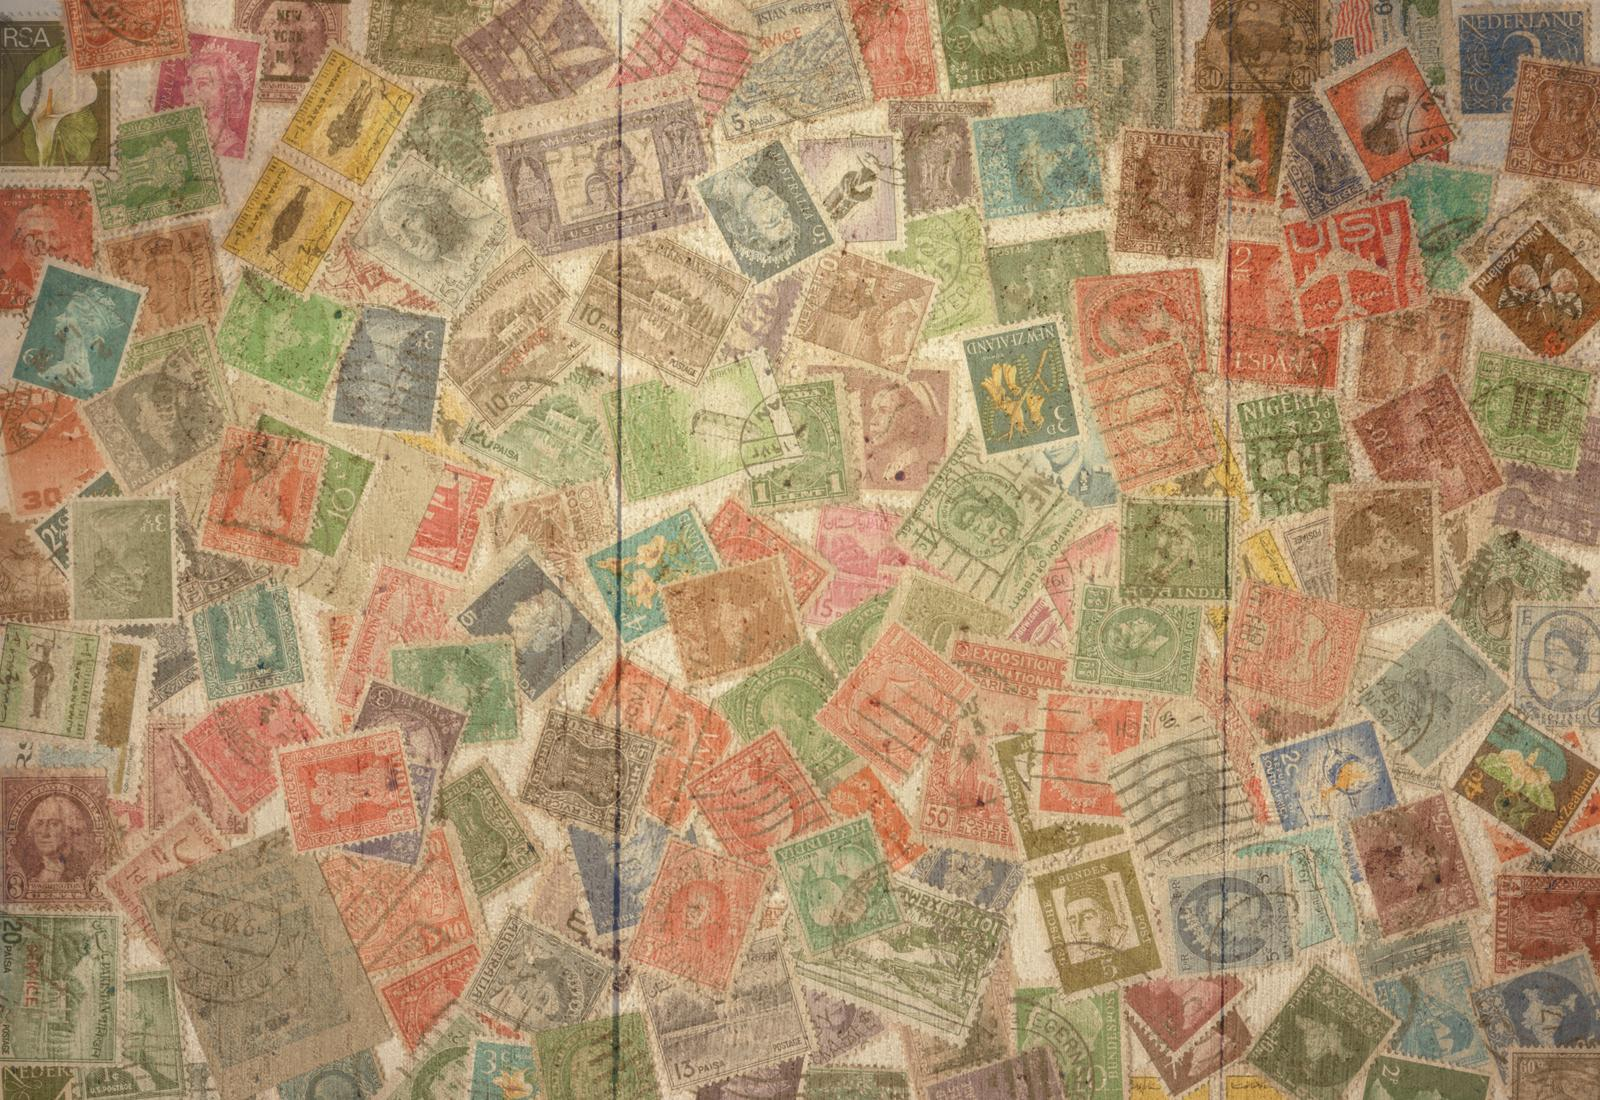 Evolution and Stamp Collecting, Part 1 (of 2)